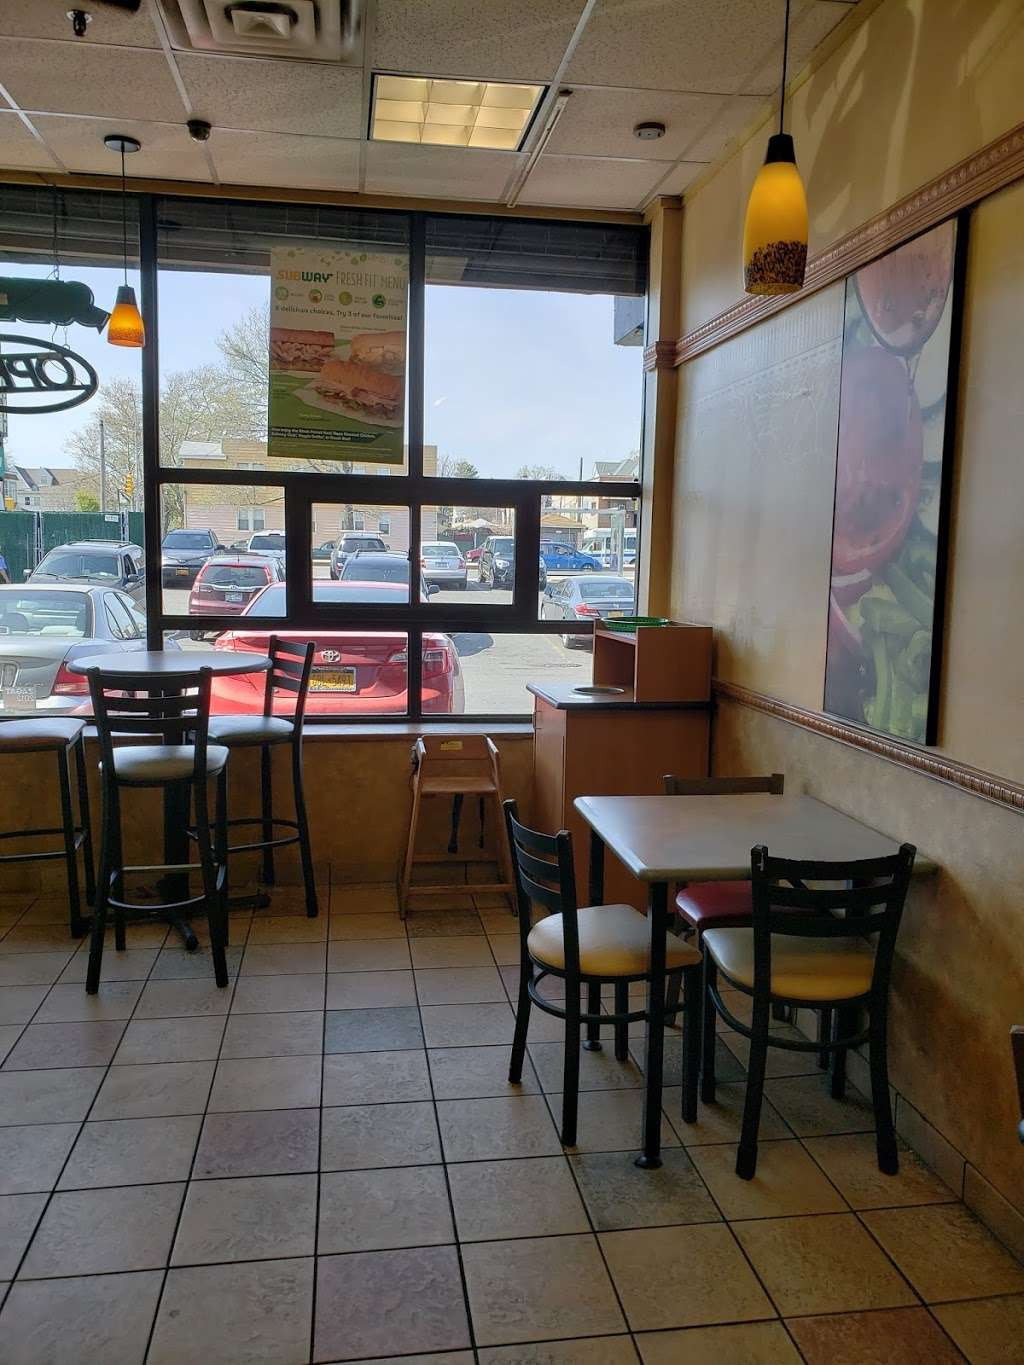 SUBWAY®Restaurants - restaurant  | Photo 1 of 5 | Address: 1739, 10206 Atlantic Ave, Richmond Hill, NY 11418, USA | Phone: (347) 745-8521